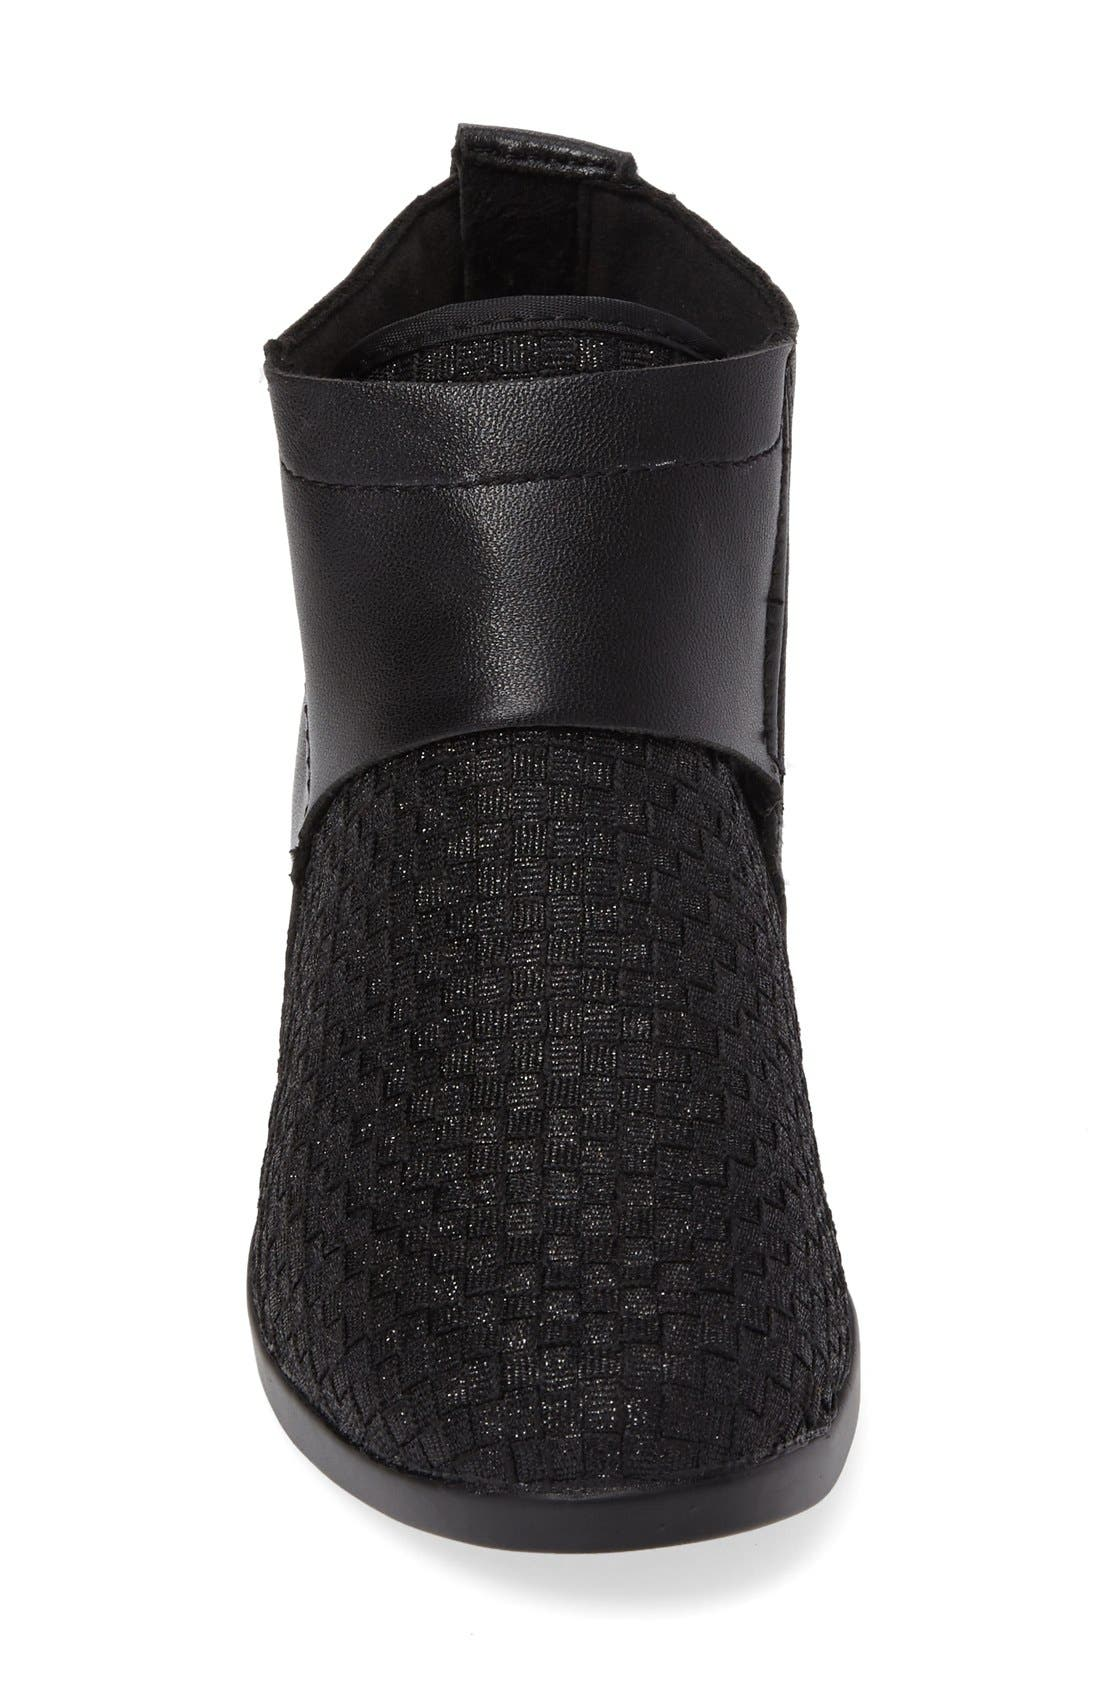 Zen Celine Mid Top Bootie,                             Alternate thumbnail 3, color,                             003